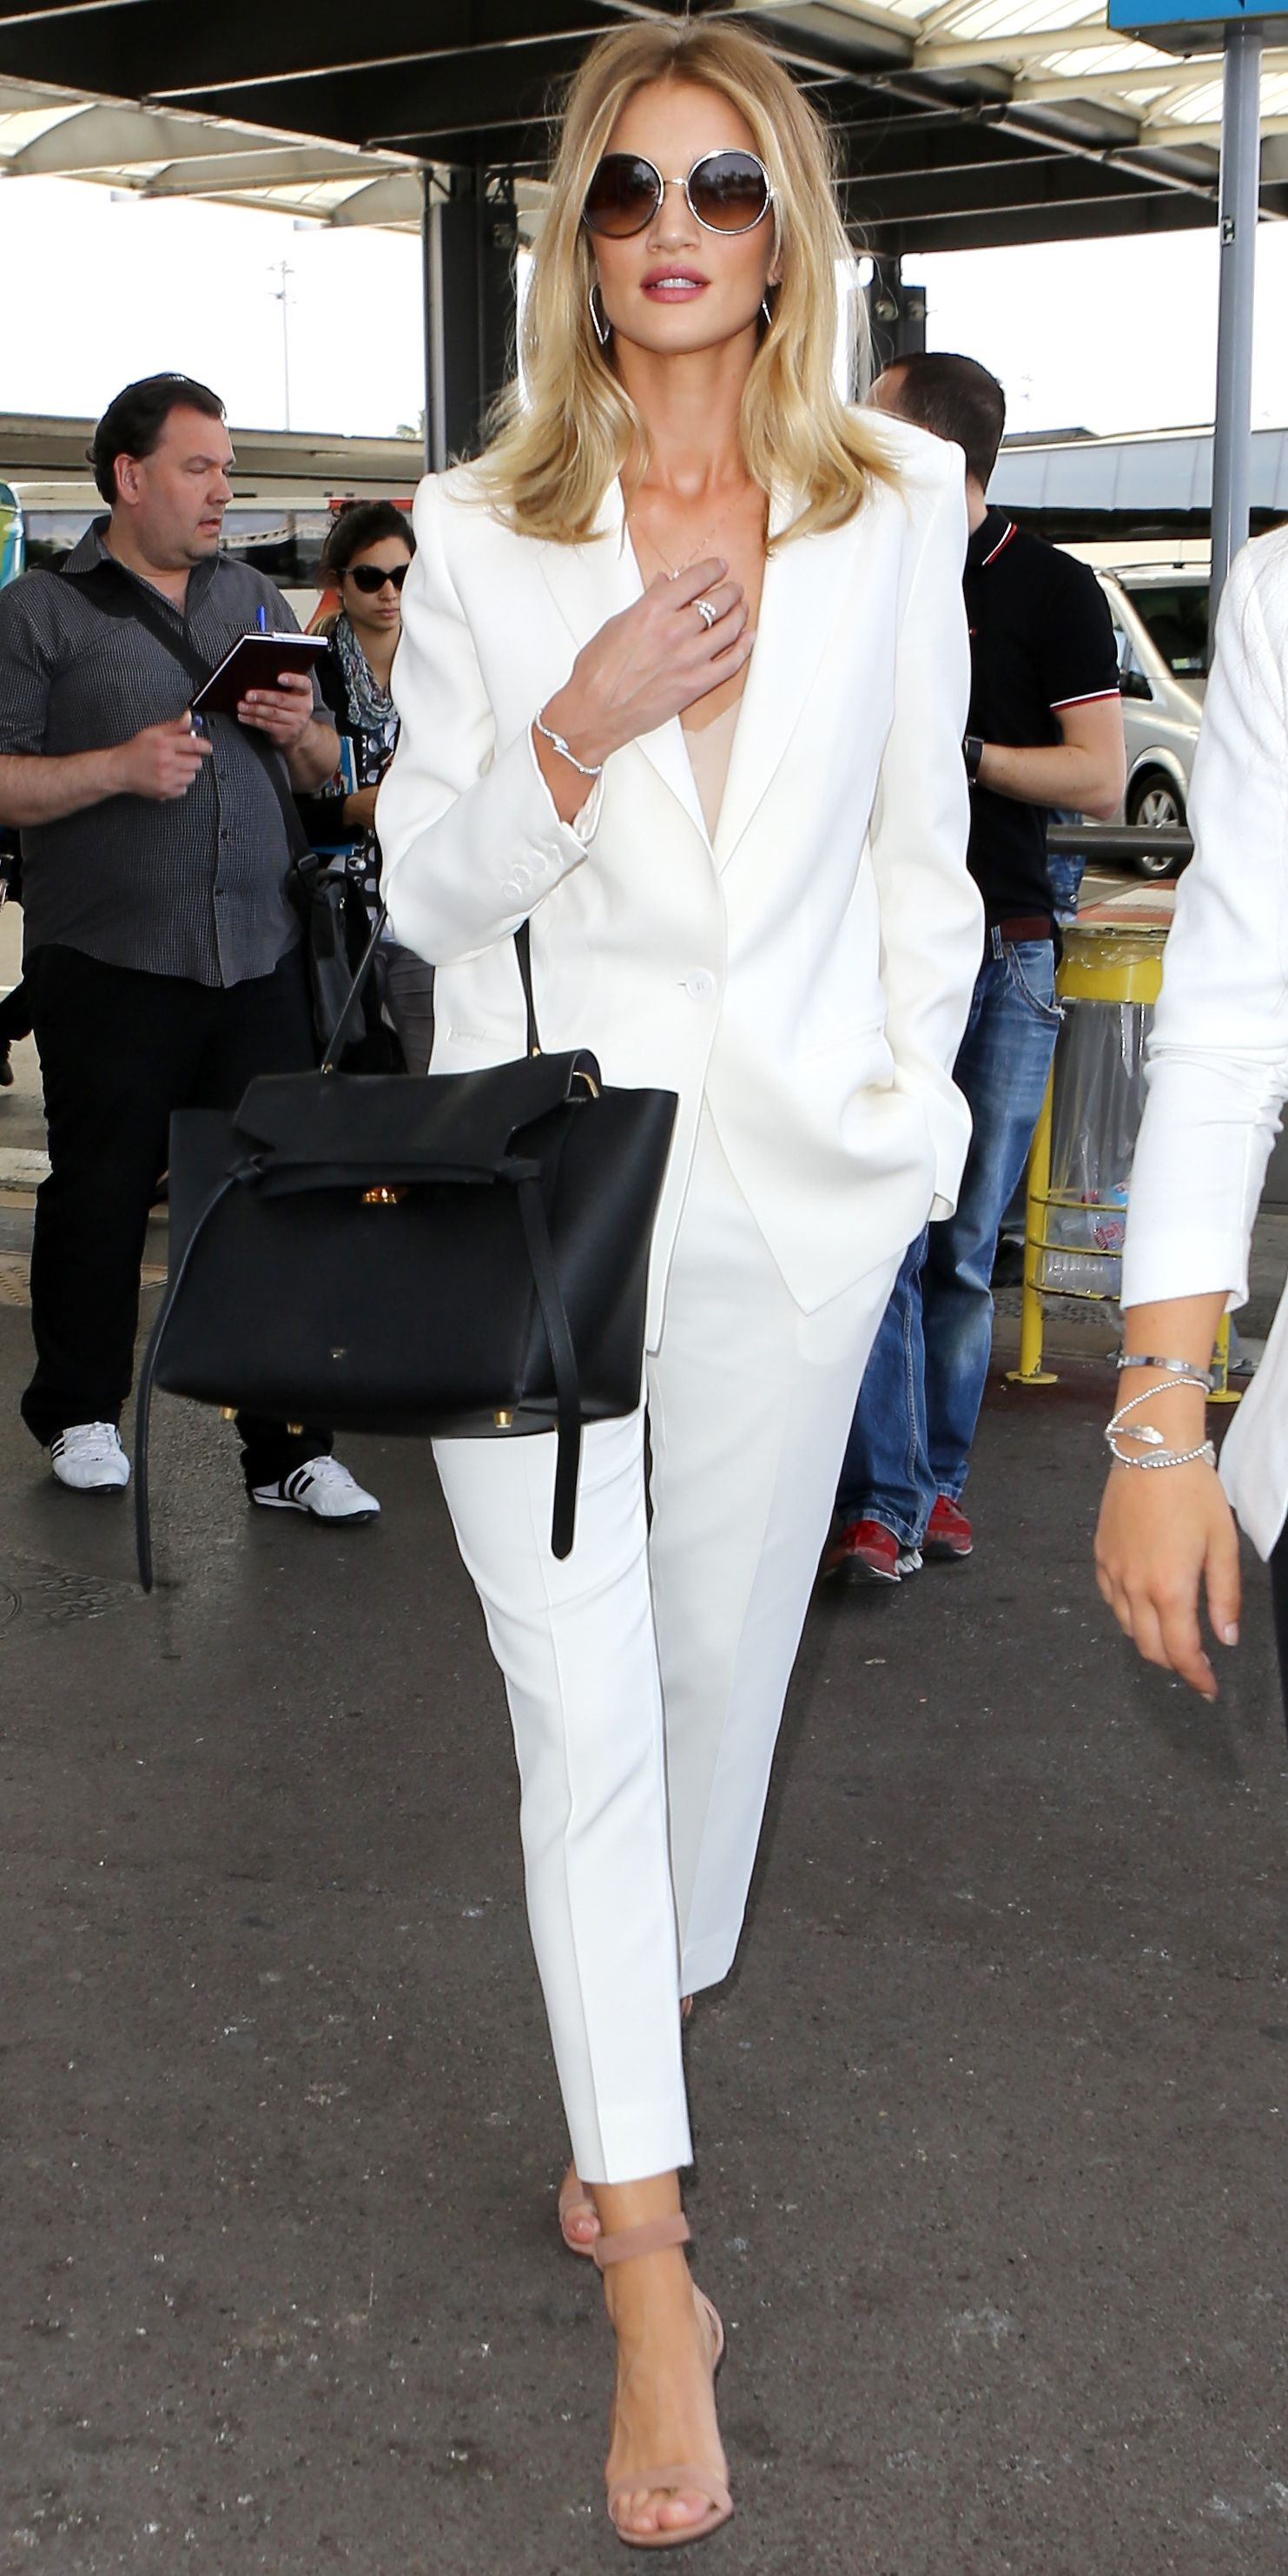 Get the look celeb bright whites images